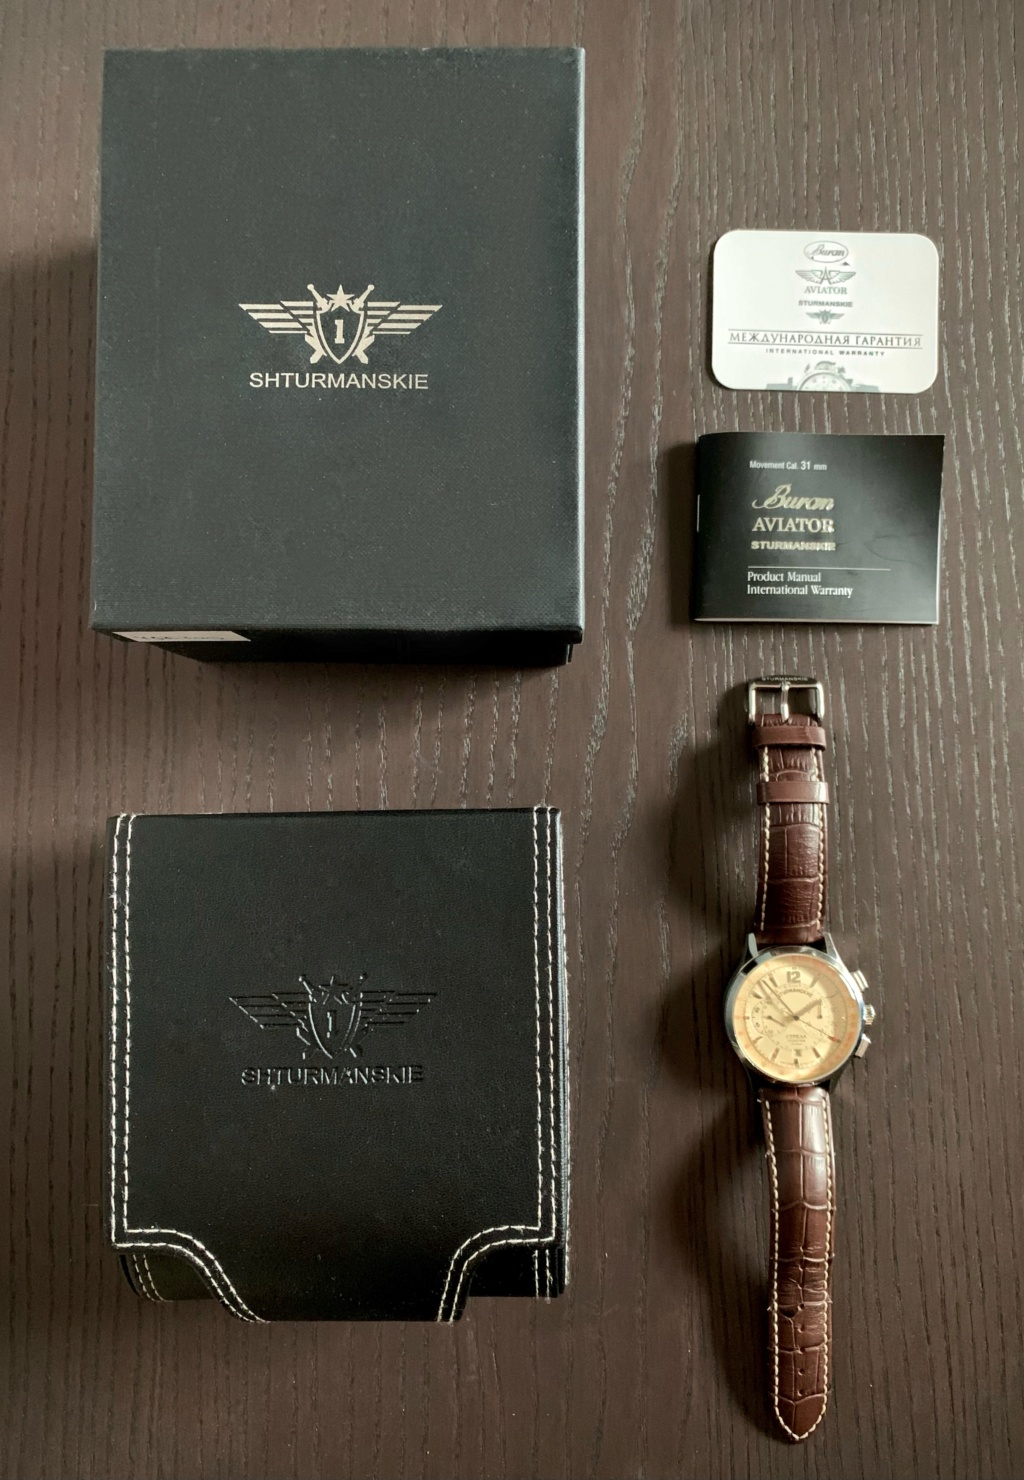 Vends Sturmanskie Strela - Volmax 44 mm 311